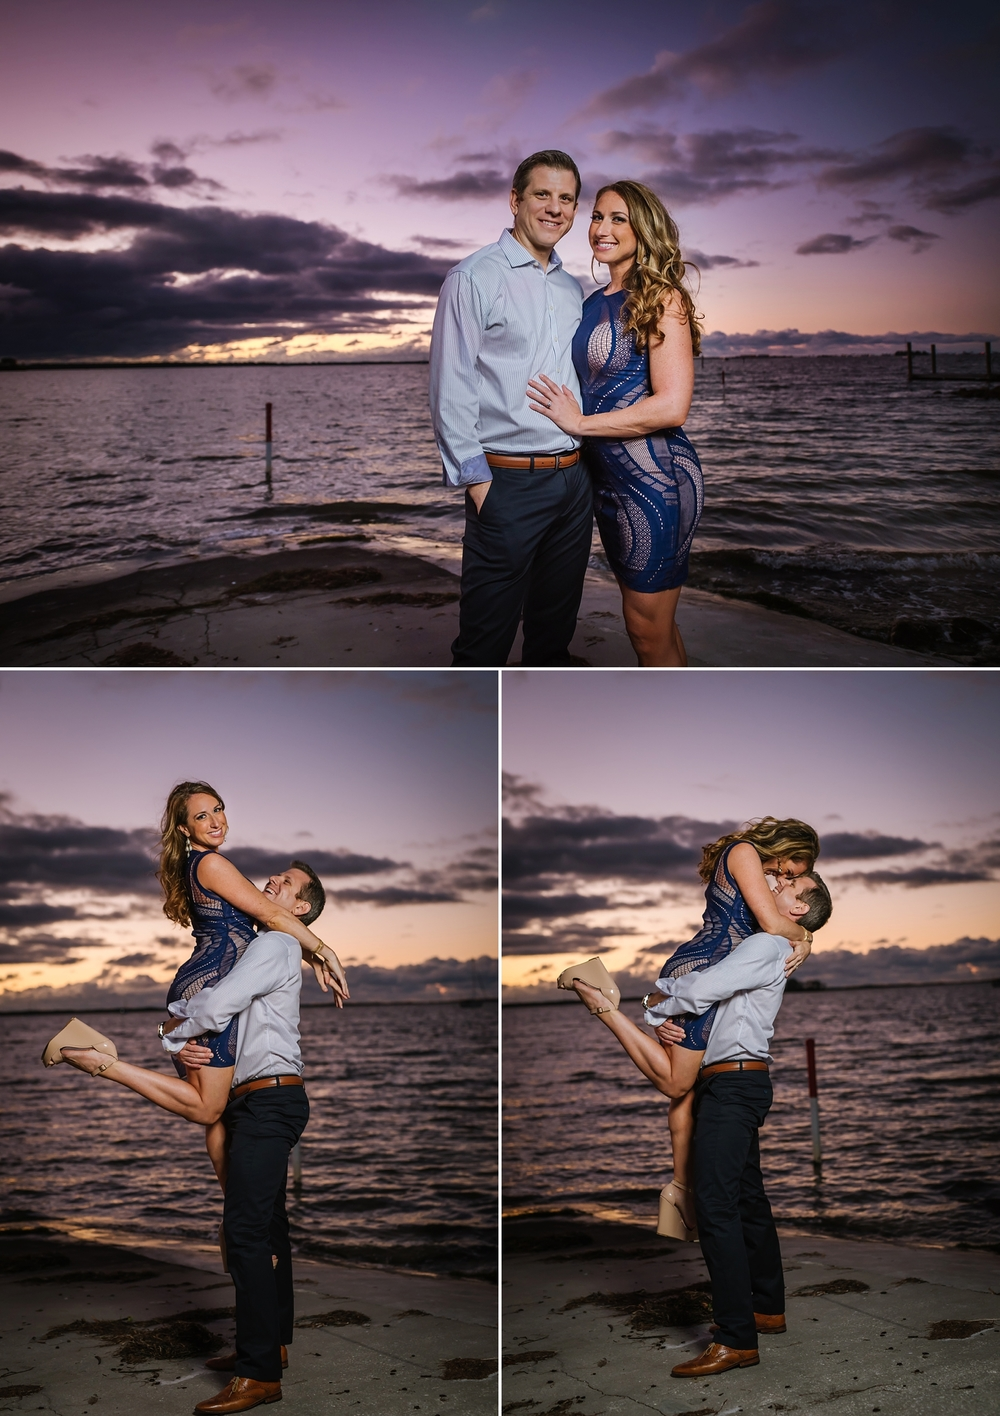 tampa-engagement-photographer-ashlee-hamon_0008.jpg